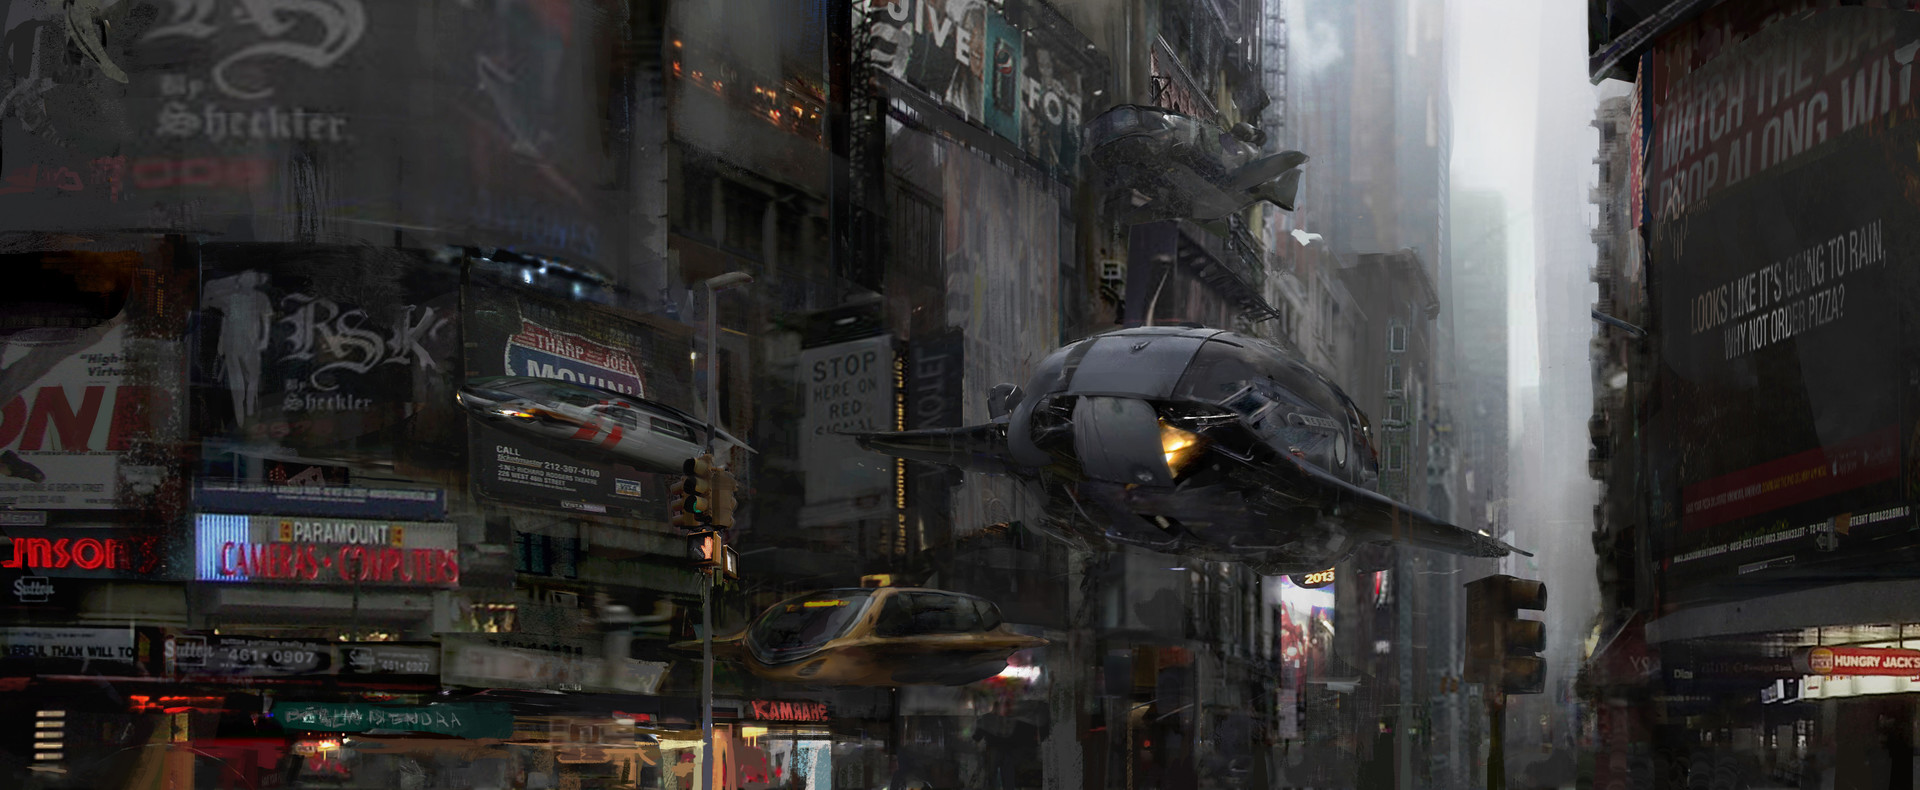 The Sci-Fi & Fantasy Art of Yu Chao Cheng